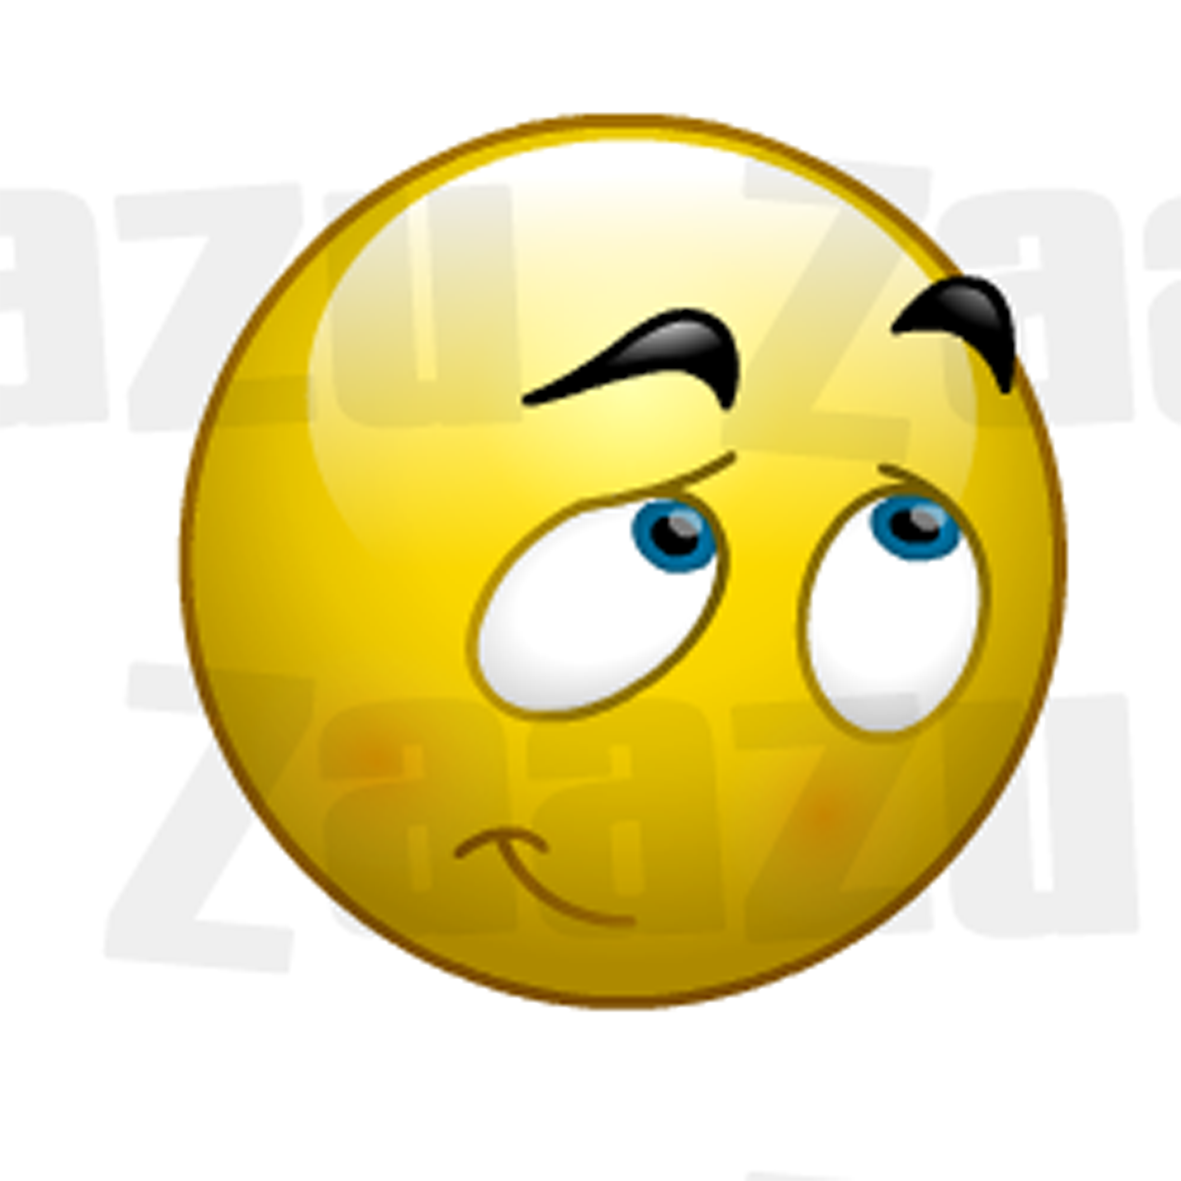 Shy-shy-timid-timorous-smiley-emoticon-000447-huge_1.png